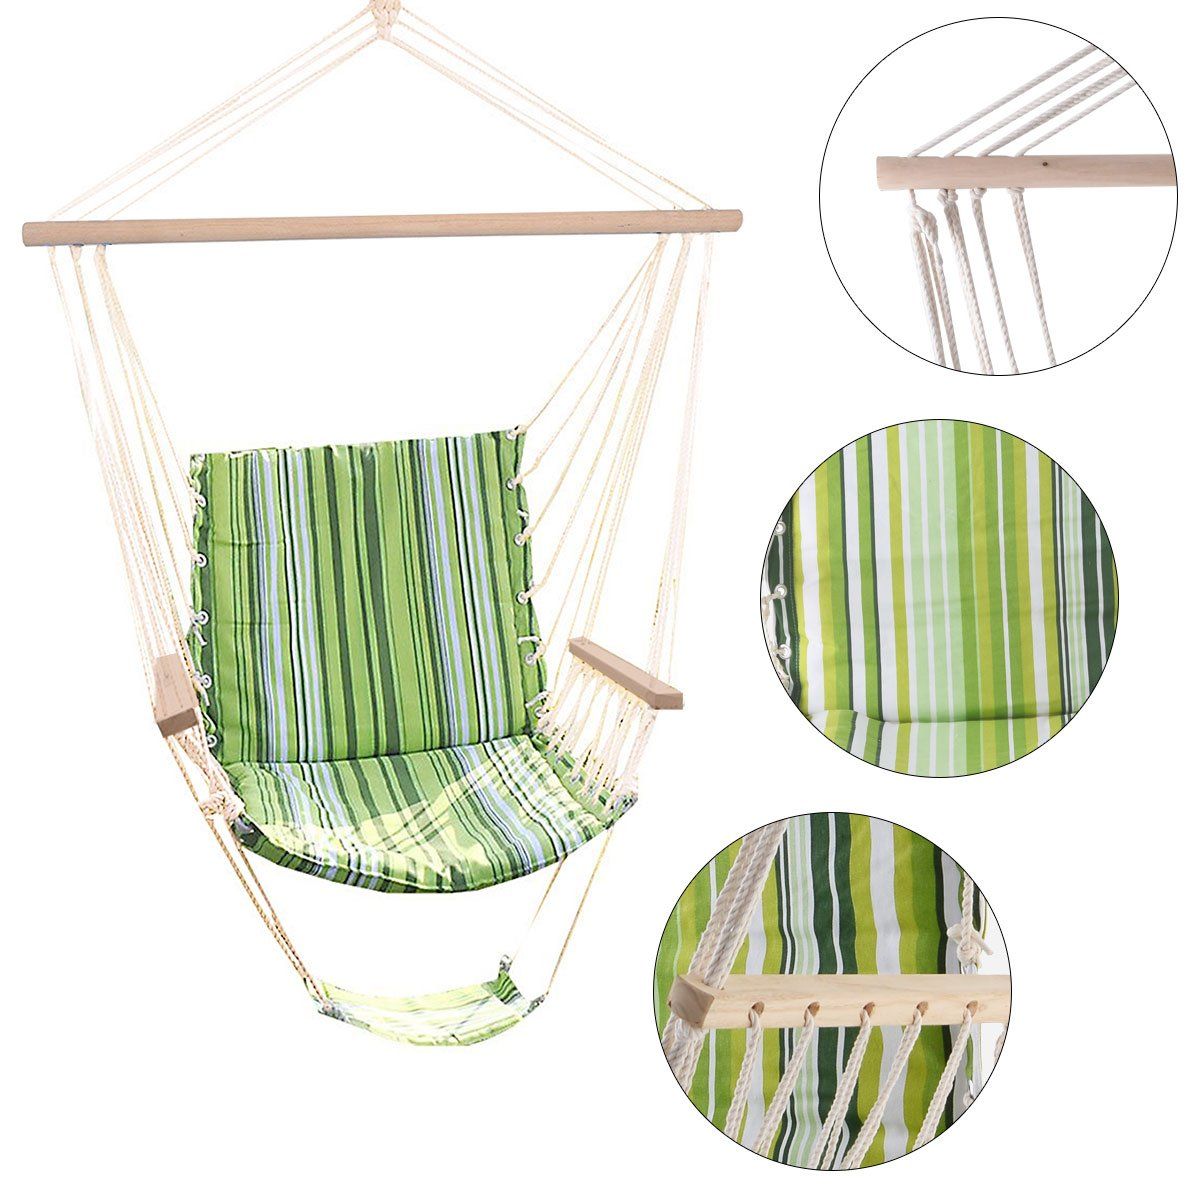 Costway Hammock Chair - Green Garden Hanging Swing Seat Padded Cushion Striped Cotton Indoor/Outdoor